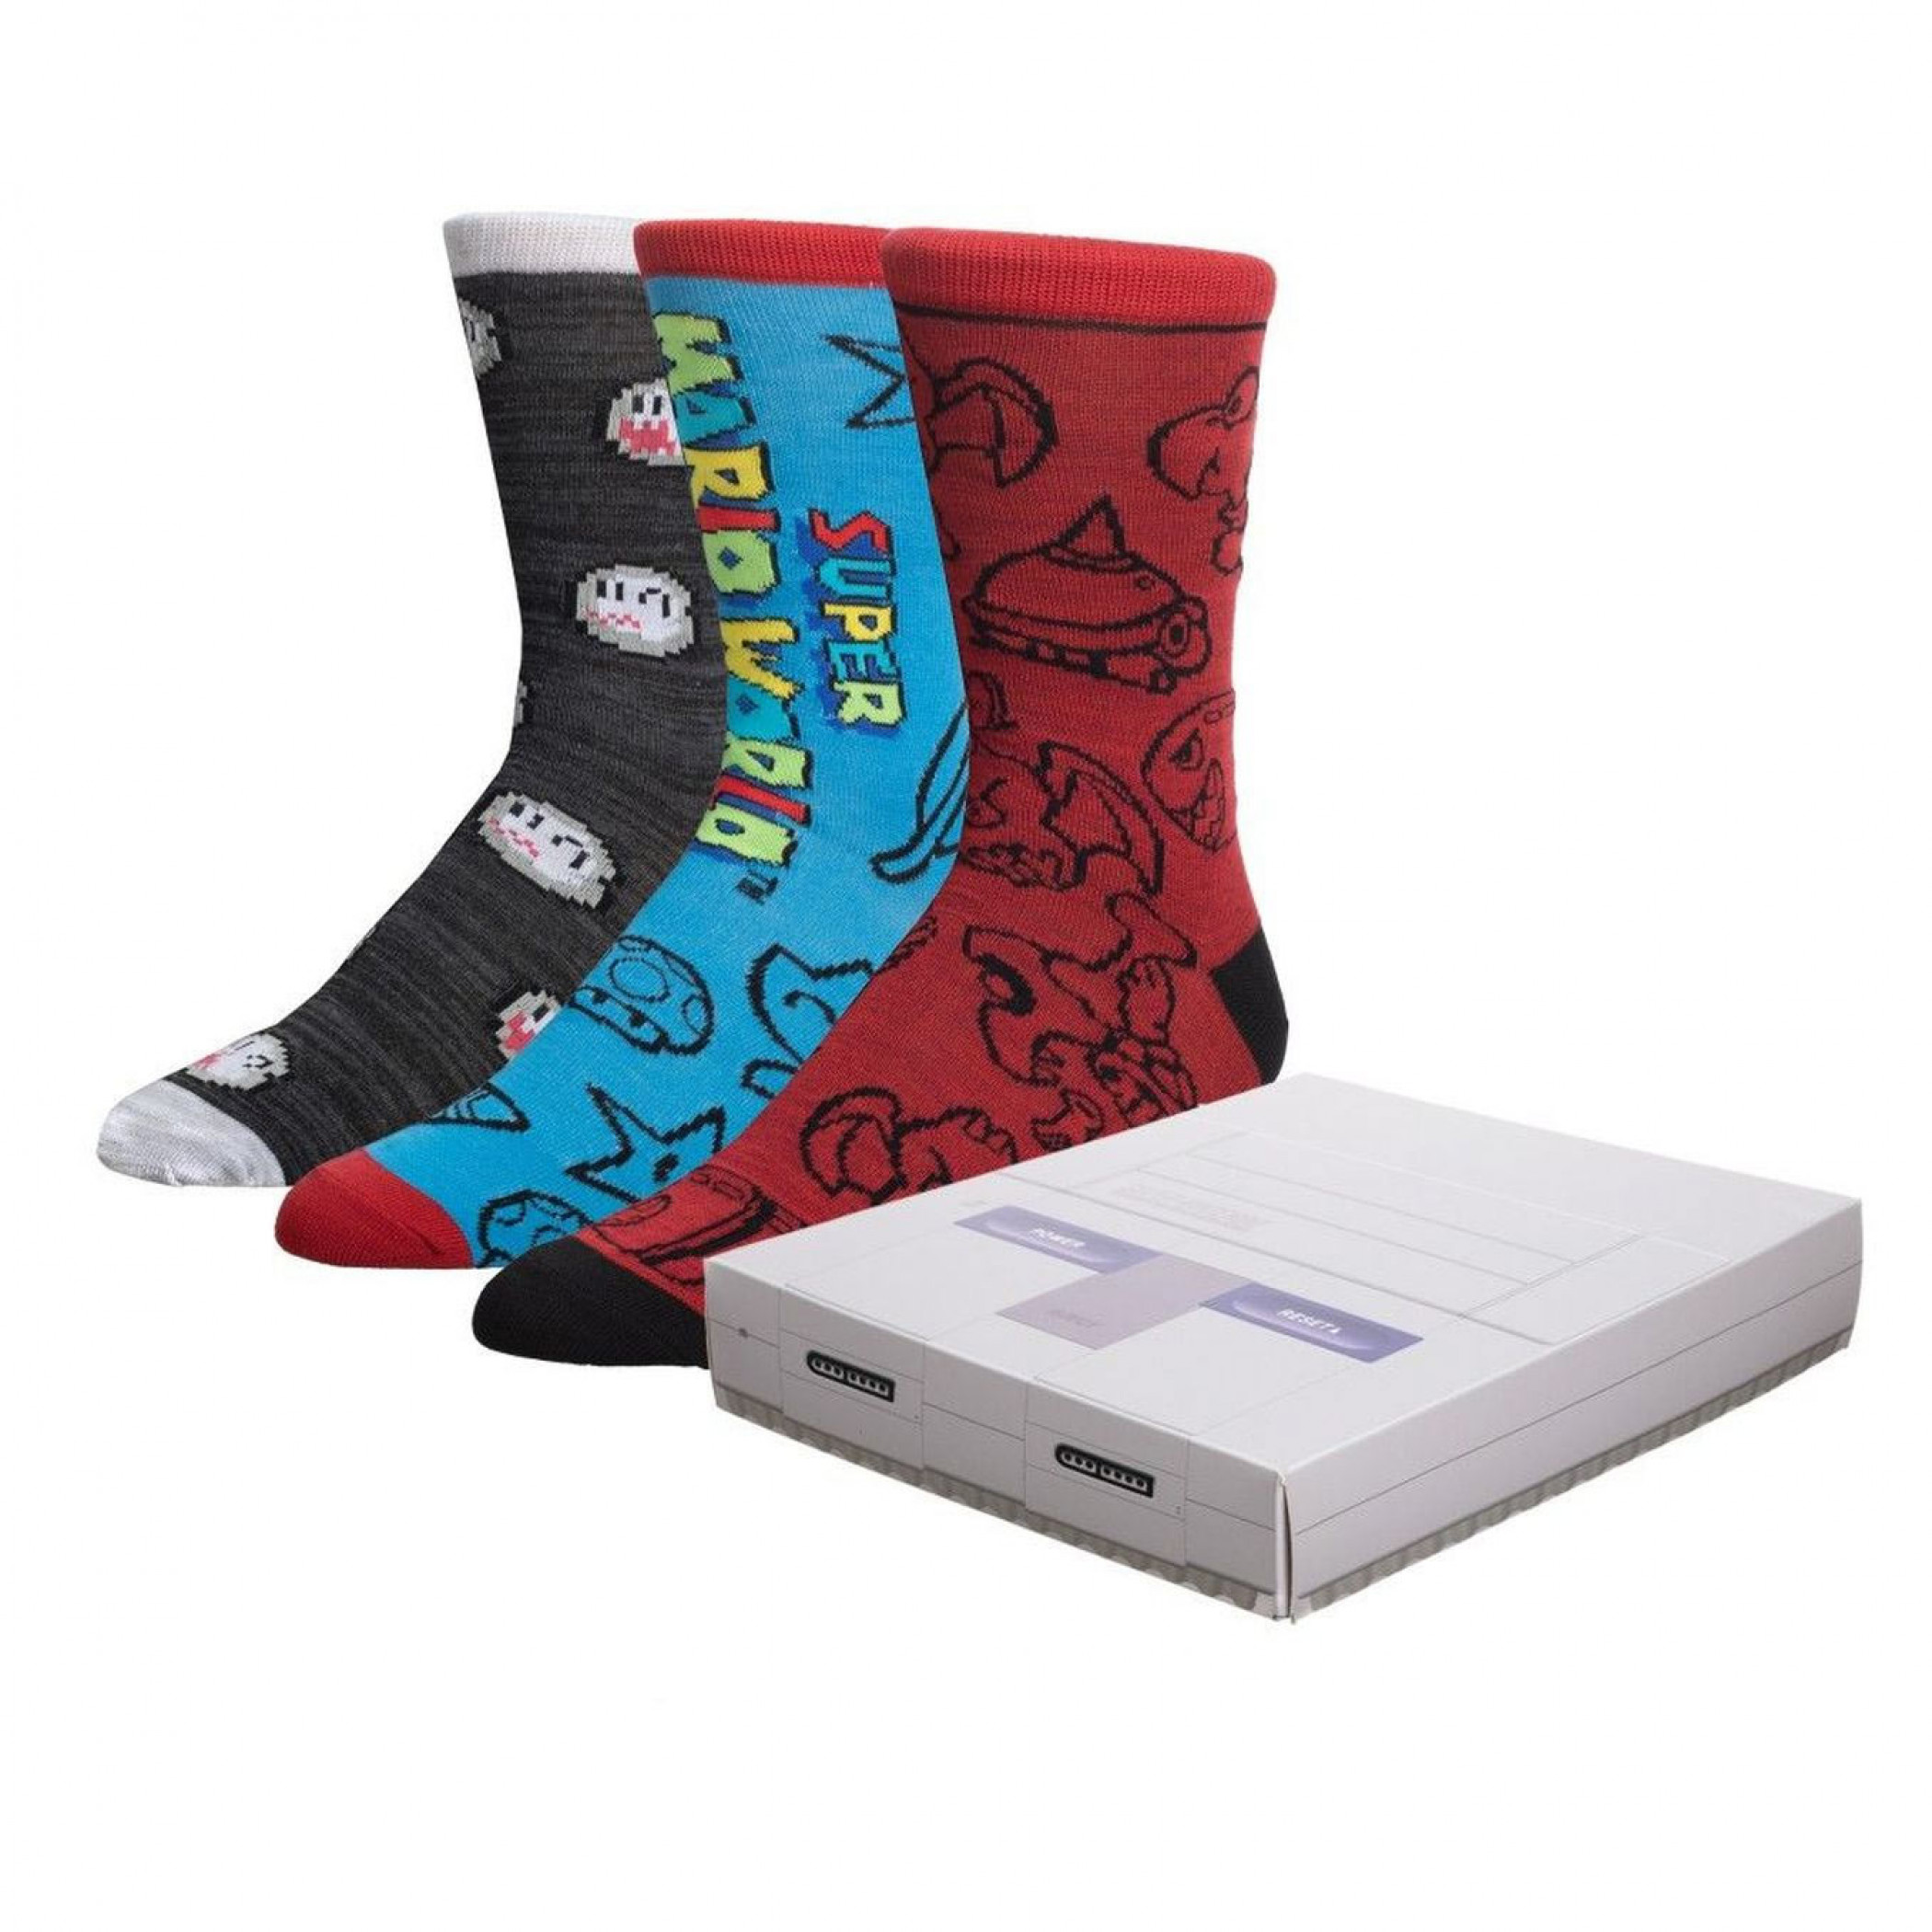 Super Nintendo Super Mario Crew Socks 3 Pack Box Set